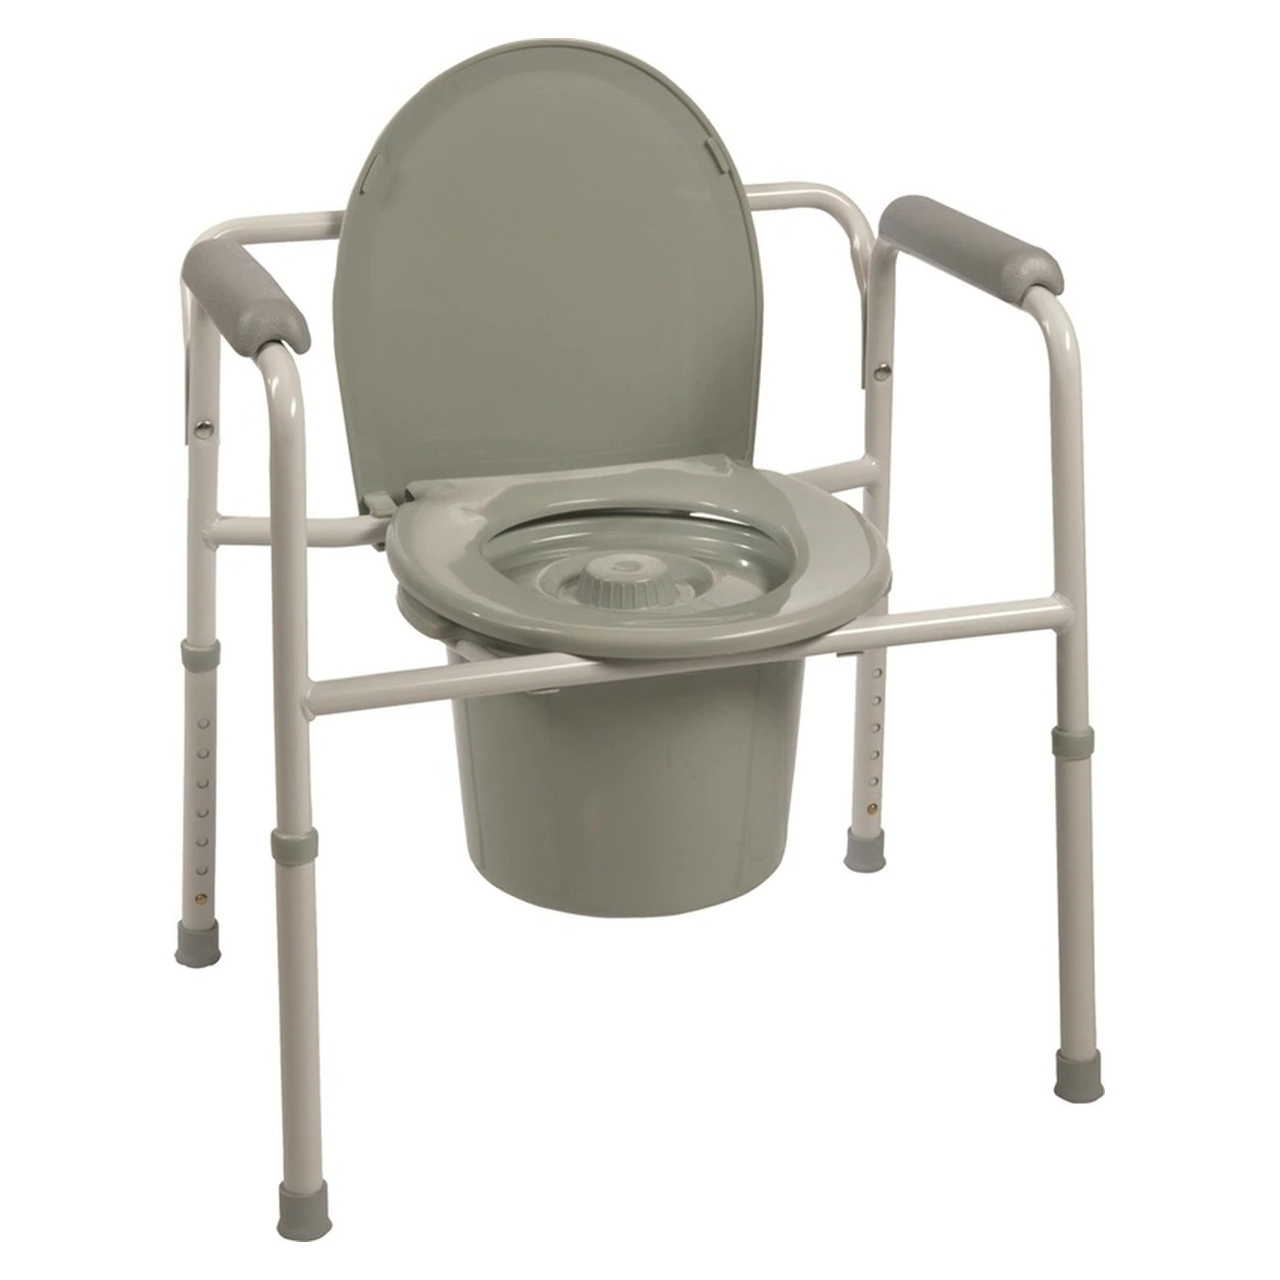 ProBasics Three-in-One Steel Commode with Plastic Armrests | Michigan USA